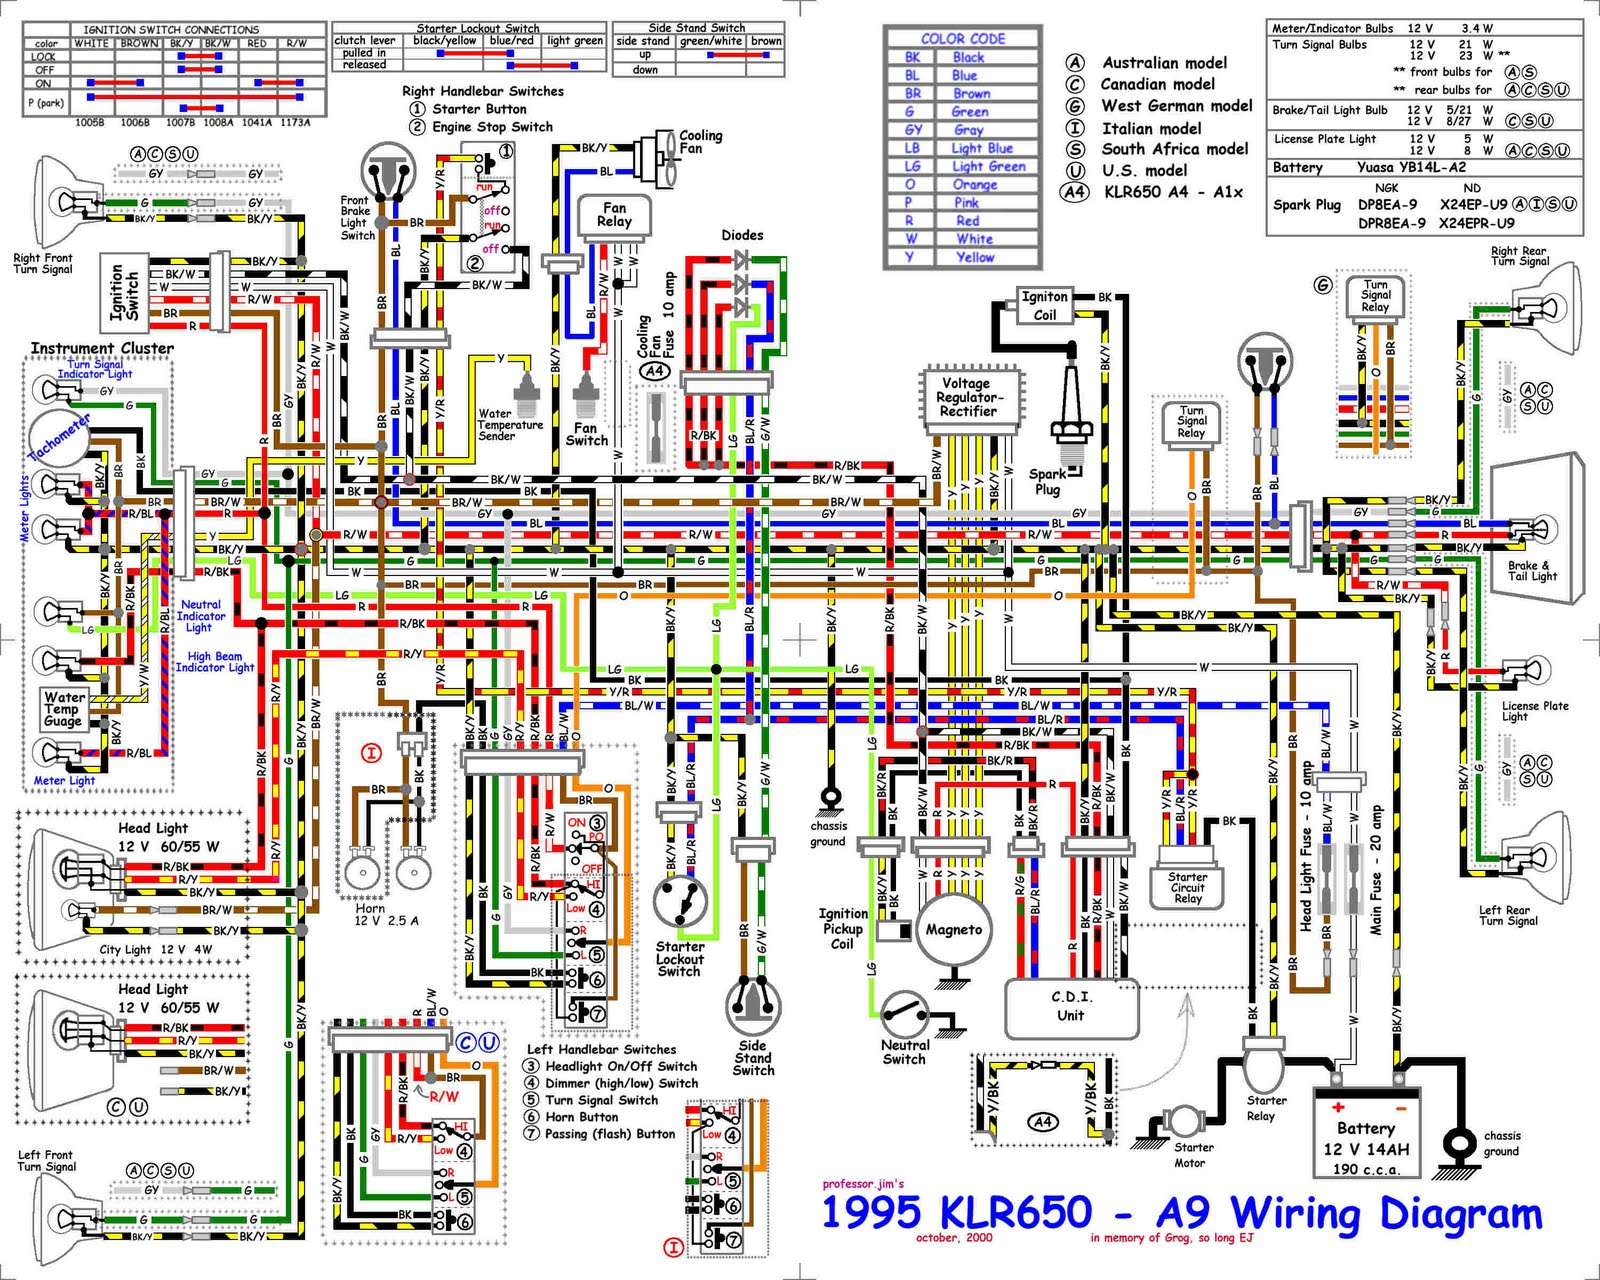 medium resolution of 76 monte carlo wiring diagram simple wiring diagrams 1985 monte carlo wiring diagram 1974 monte carlo wiring diagram